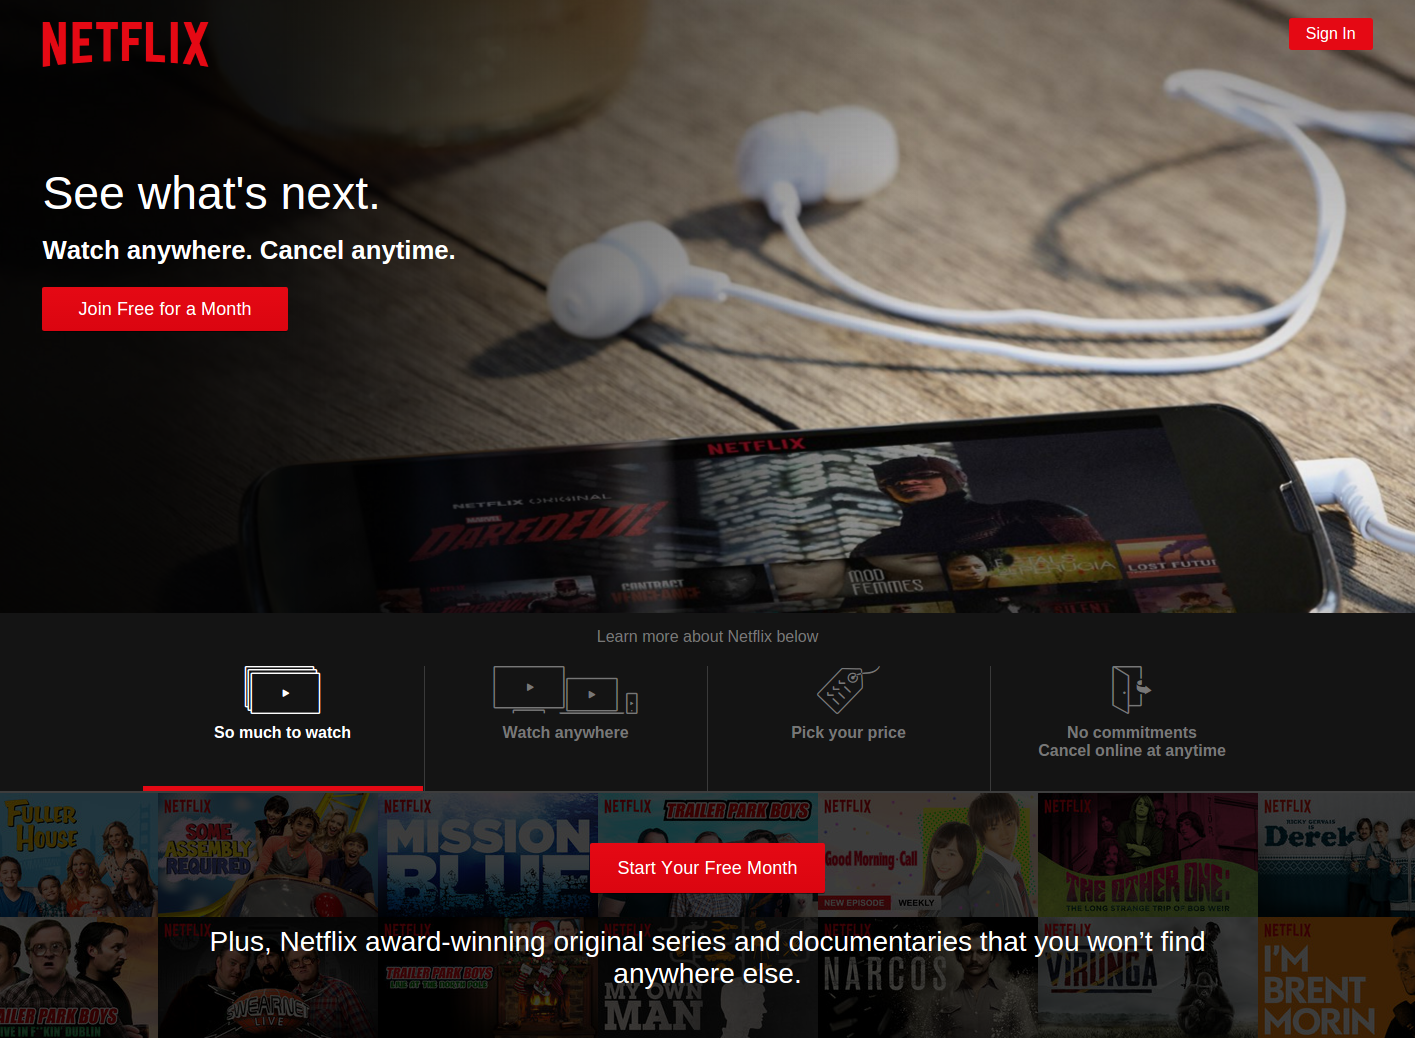 Netflix has solved the problem of watching TV series over the Internet